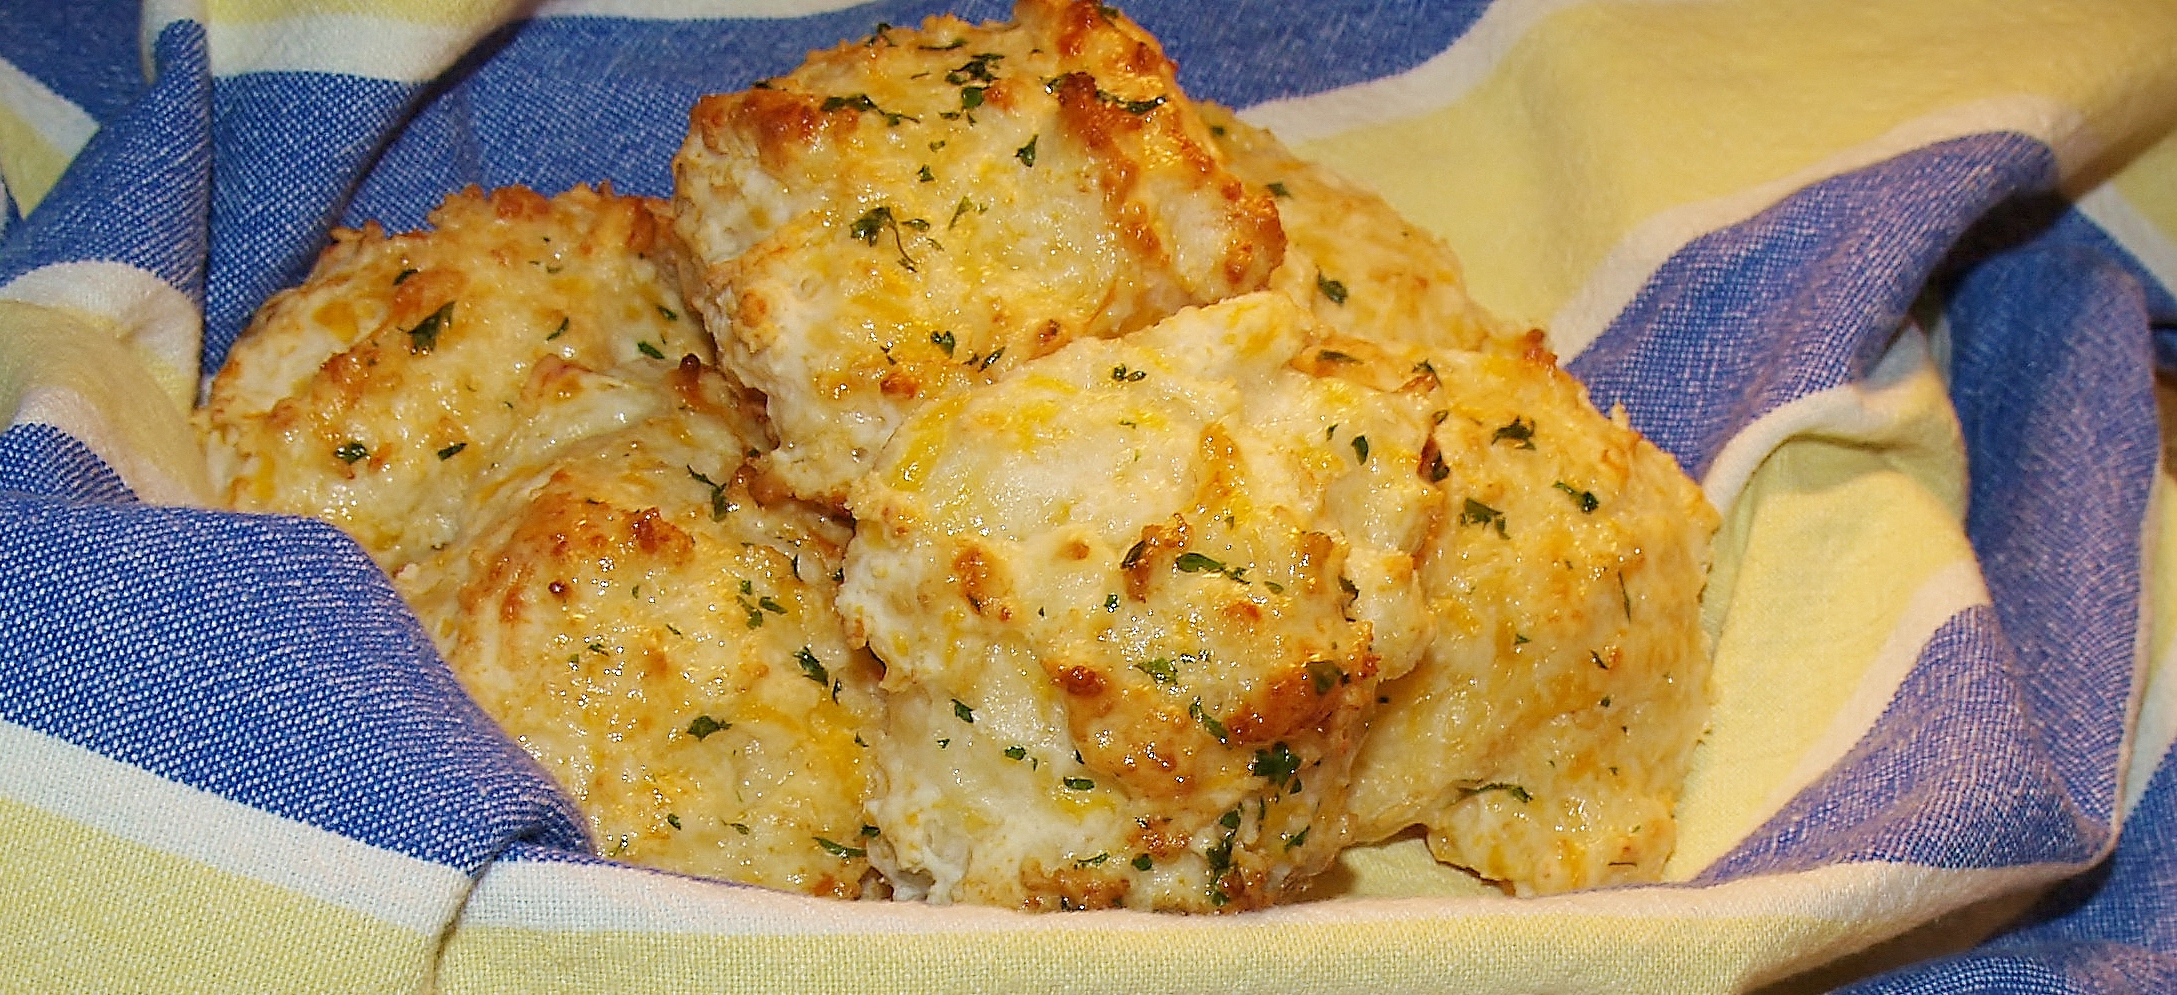 Cheddar Biscuits for My Valentine | The Domestically Impaired Guide to ...